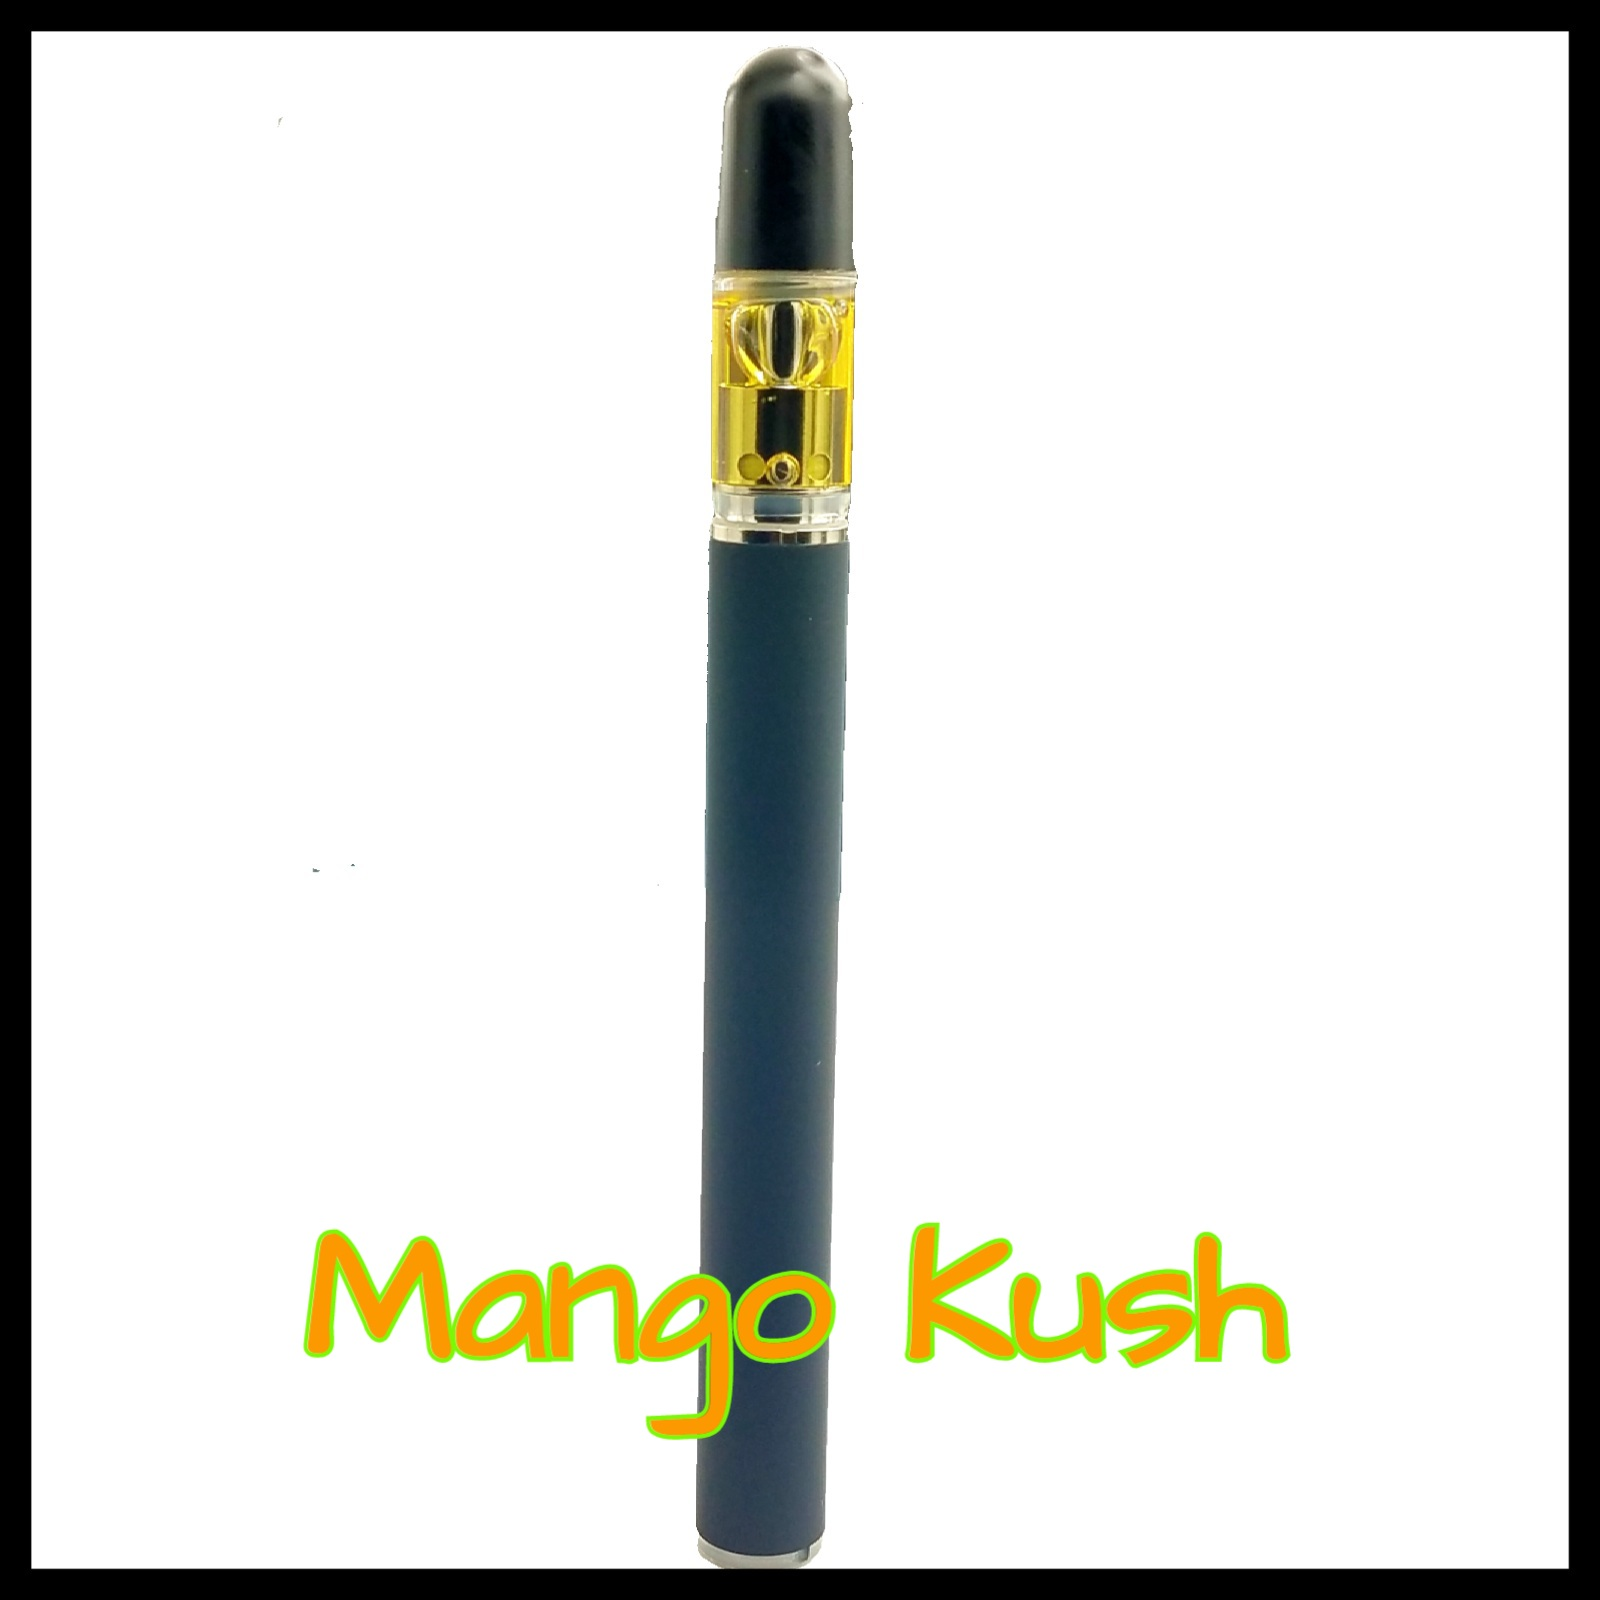 SNX - Mango Kush (Black Label) Ultra Refined Oil Pen